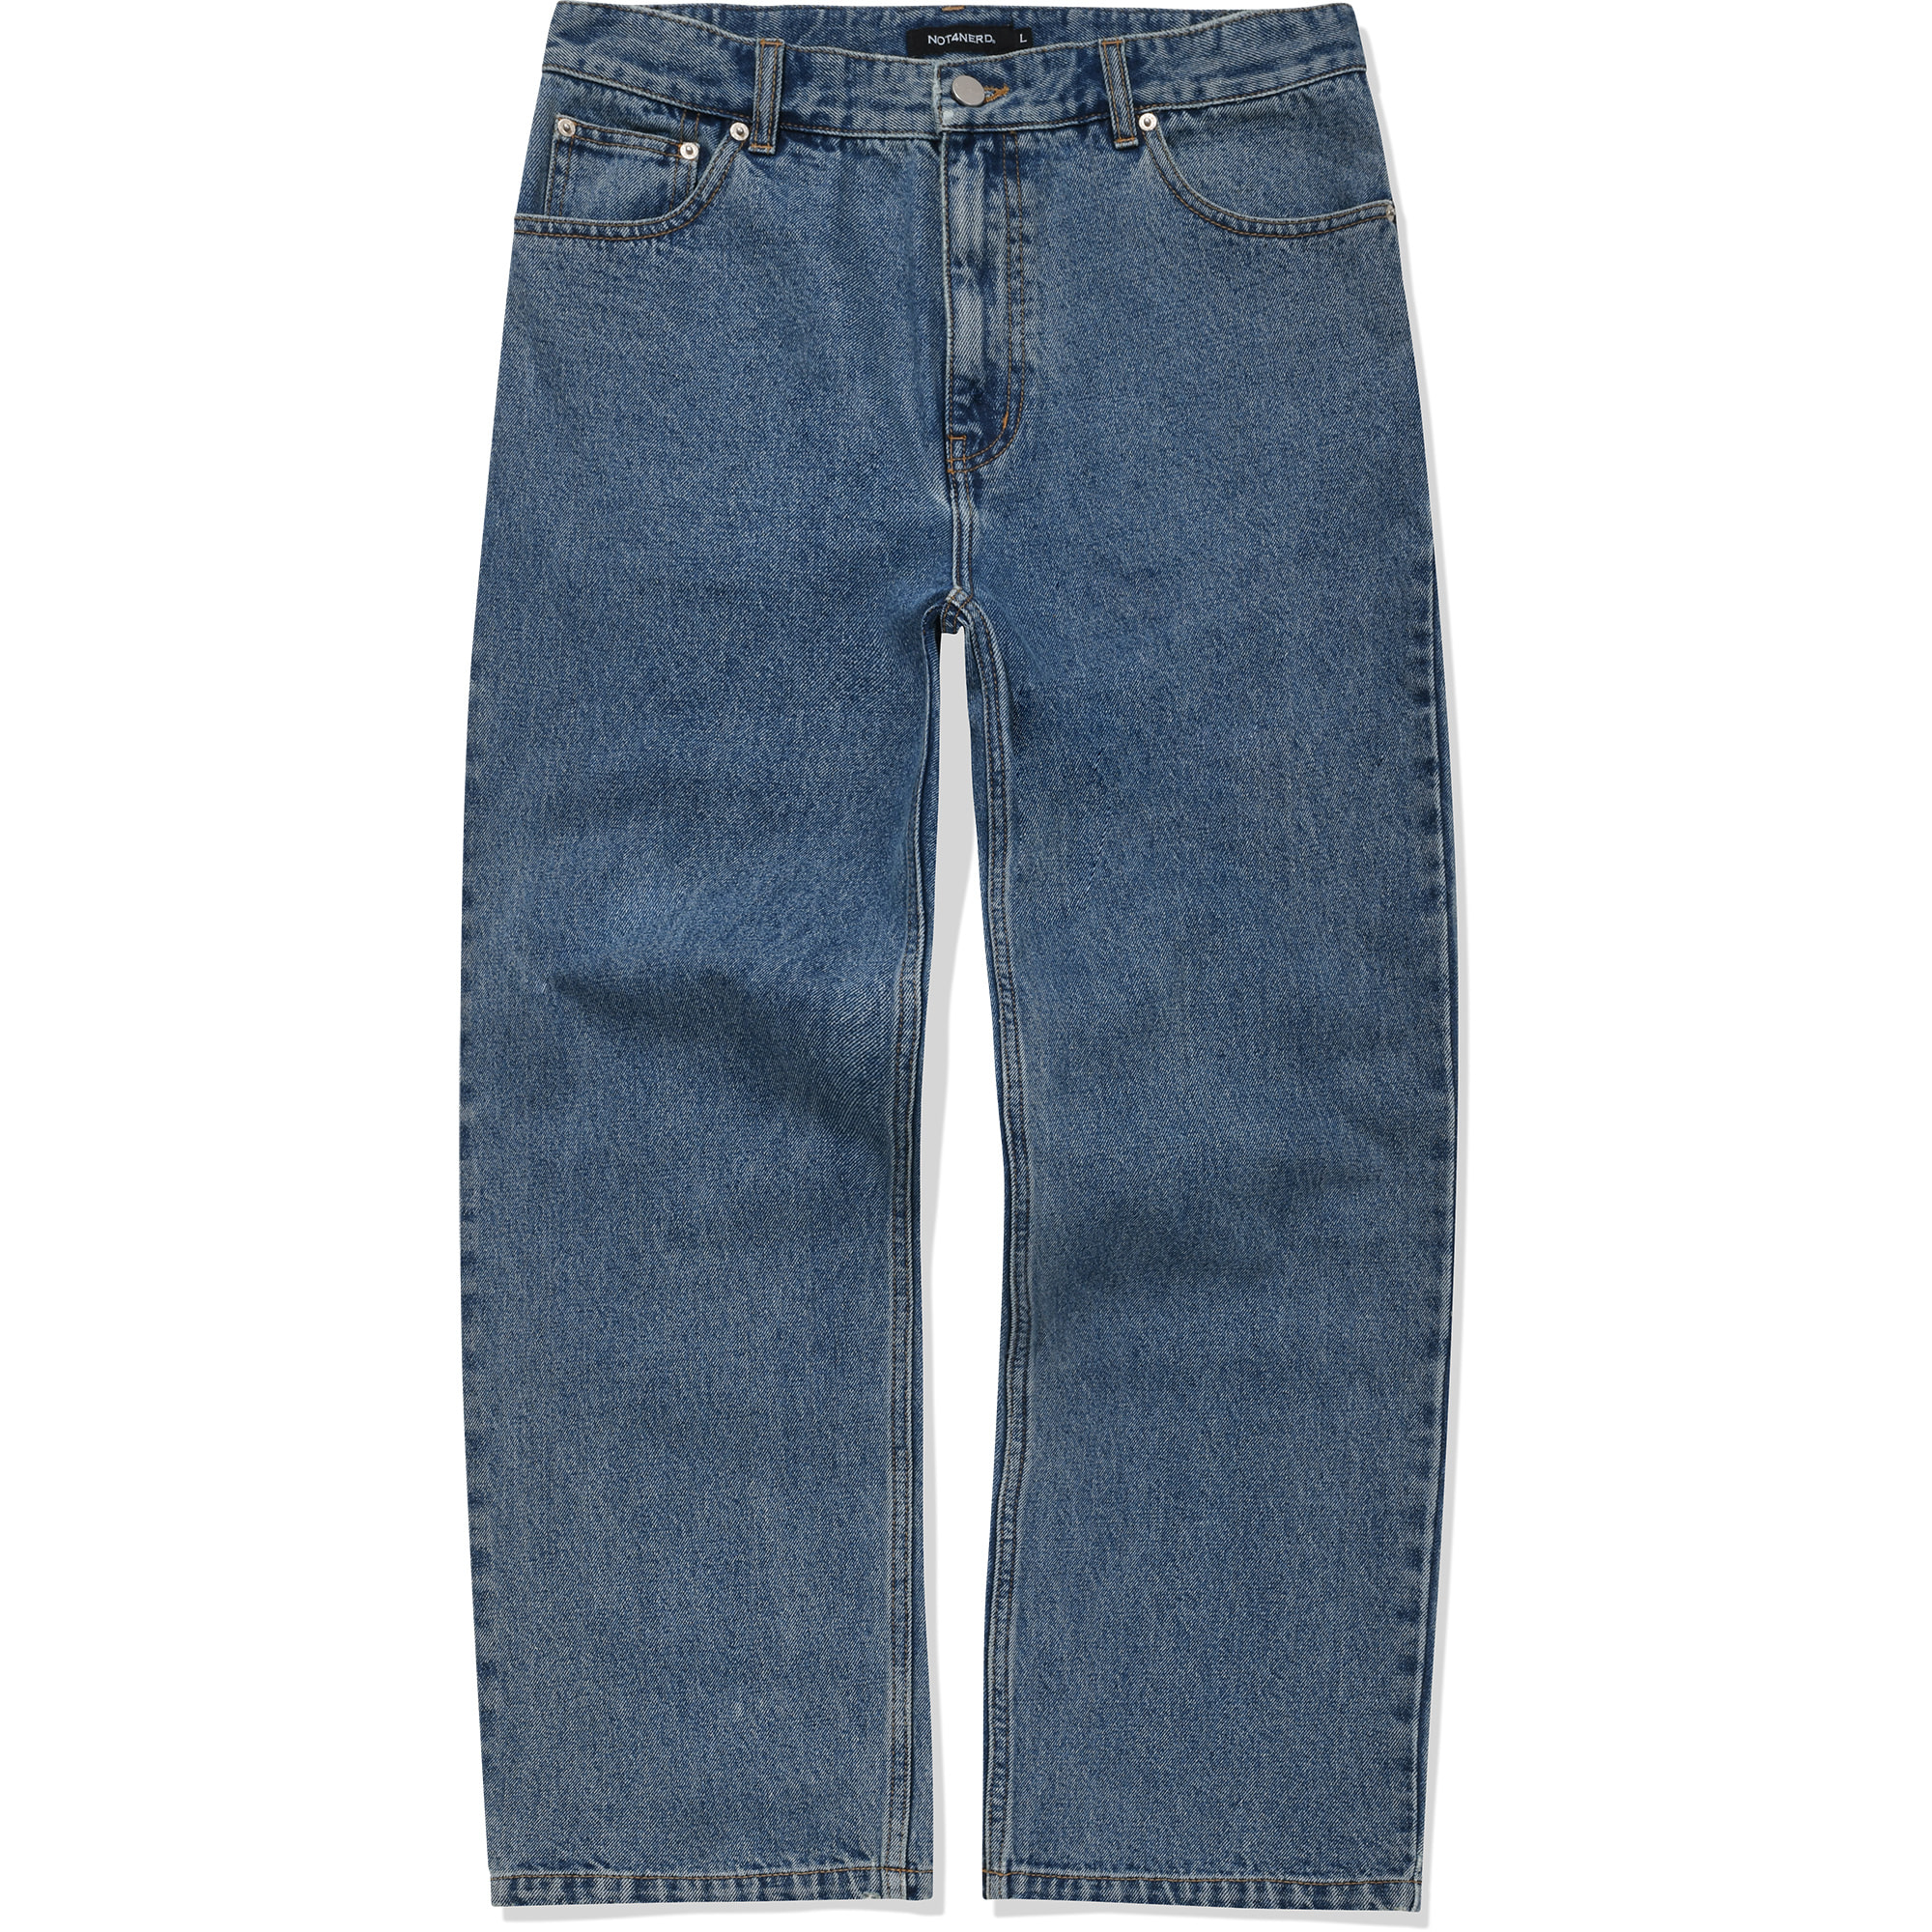 Card Wallet Wide Denim Pants [Deep Blue],NOT4NERD